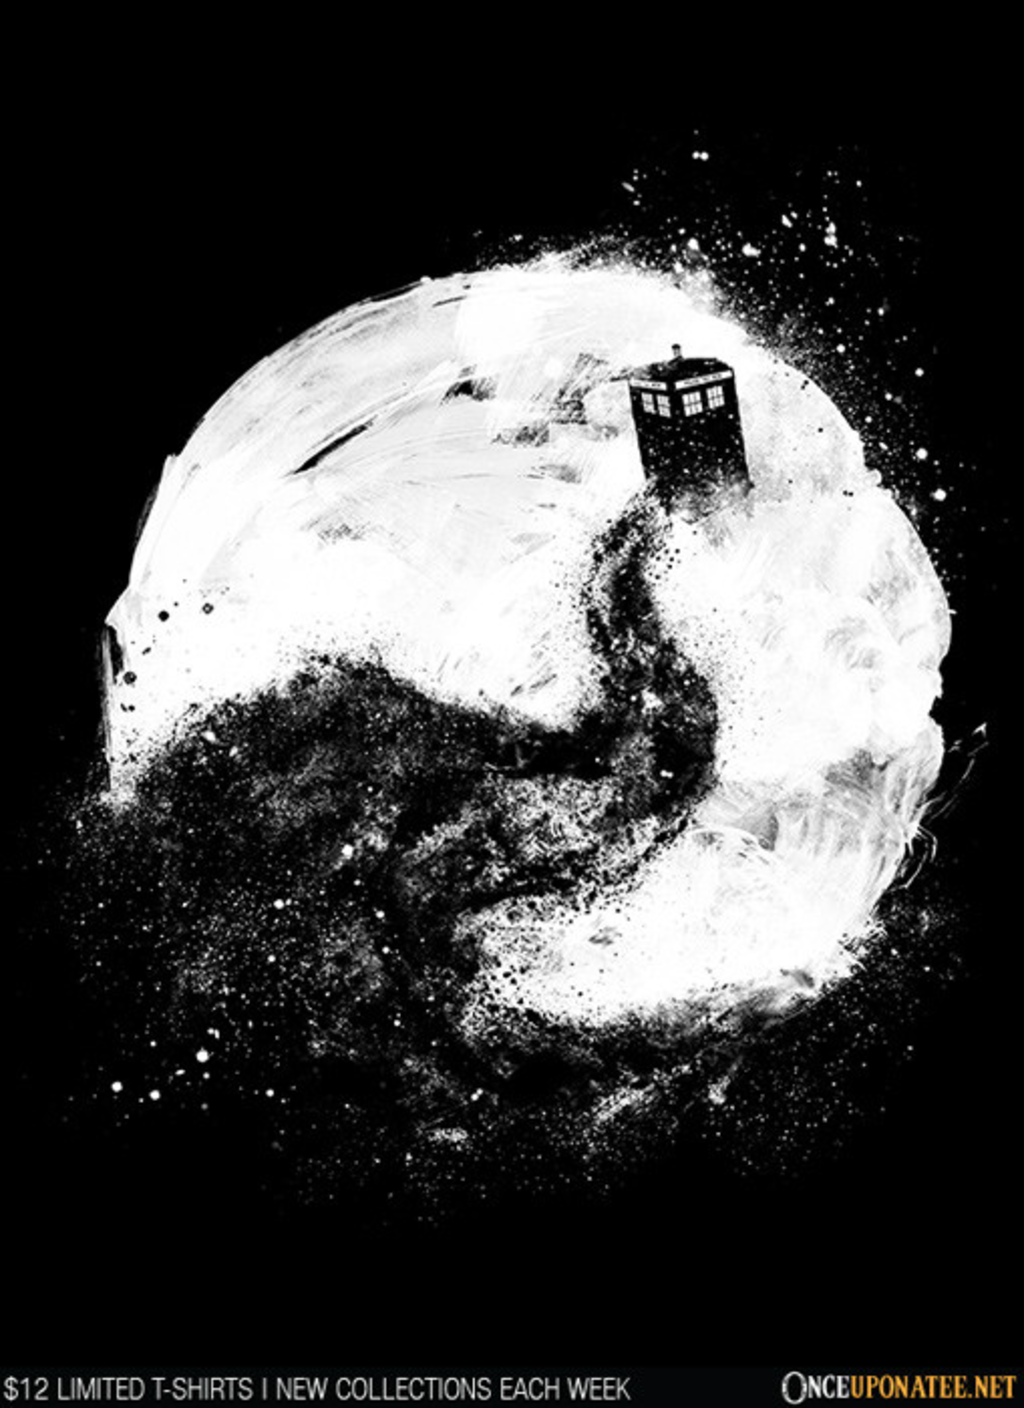 Once Upon a Tee: All of Time and Space